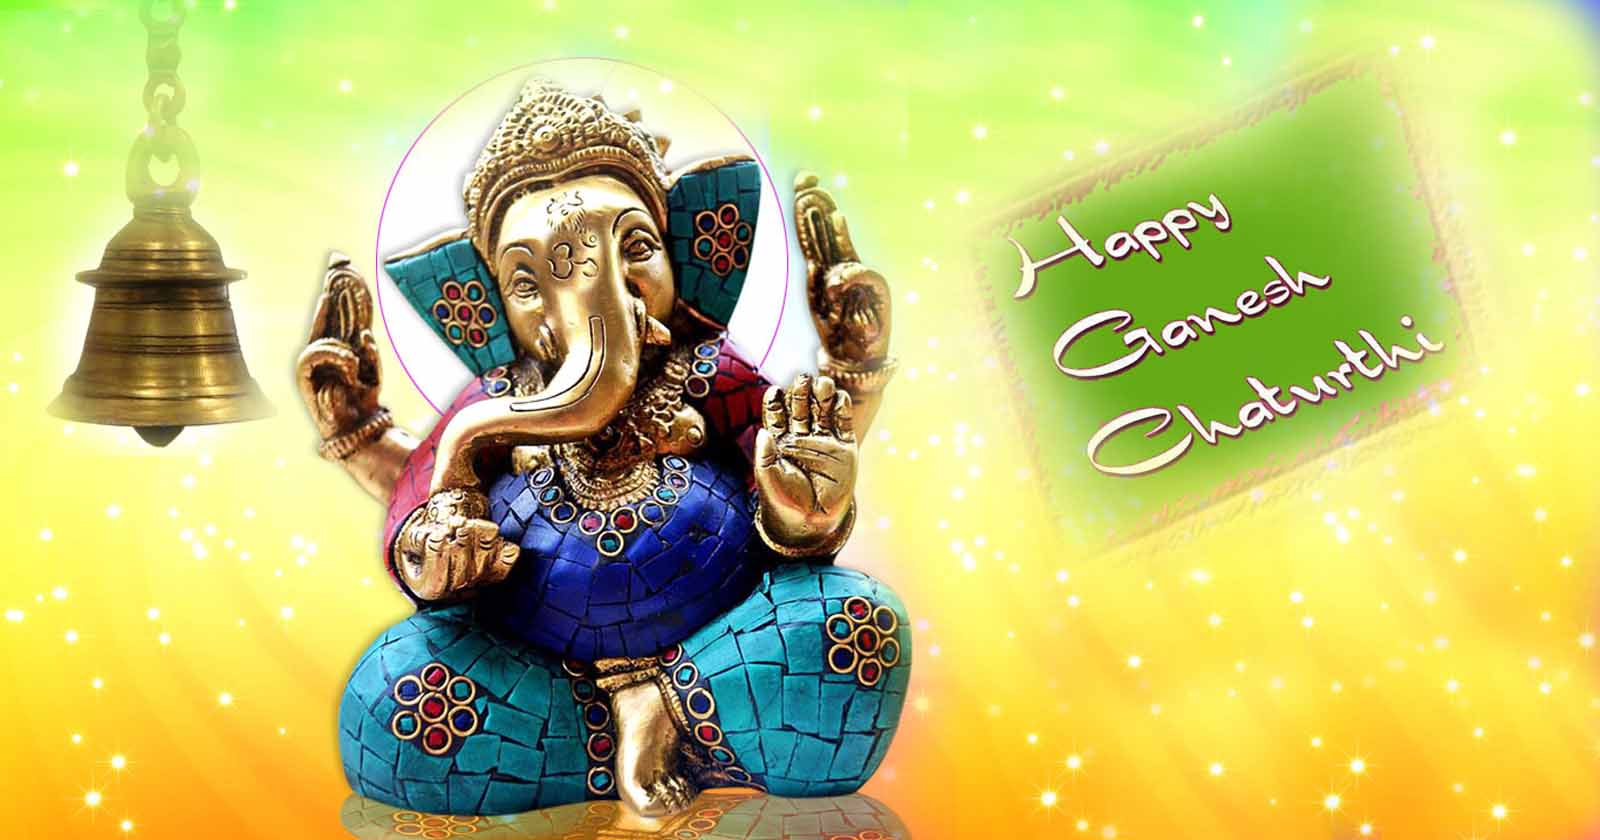 Wellness Diabetes Ganesh Chaturthi And Diabetes Management